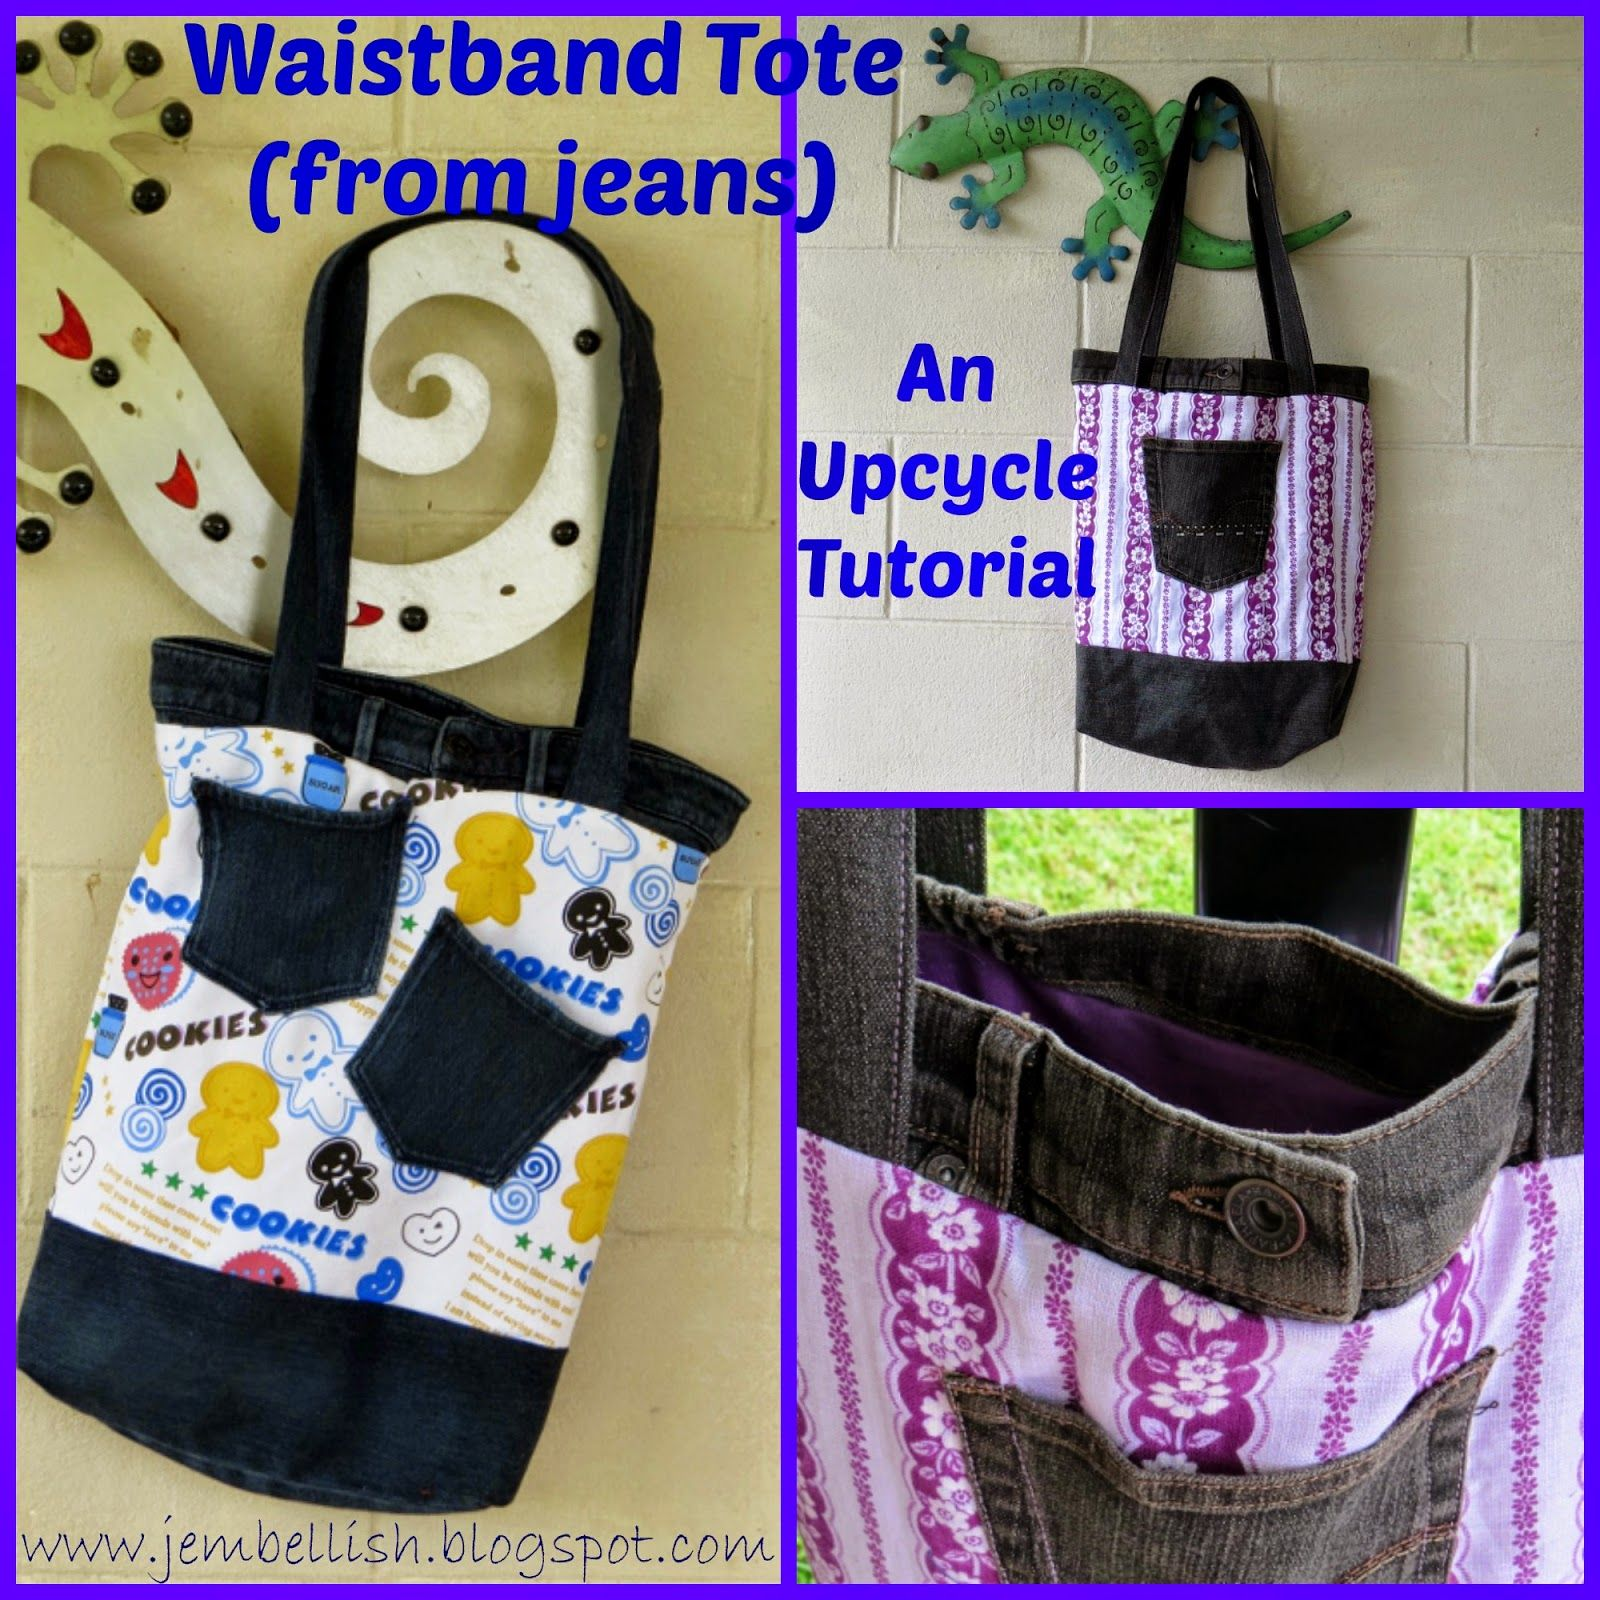 Creating my way to Success: Waistband tote - another jeans upcycle tutorial